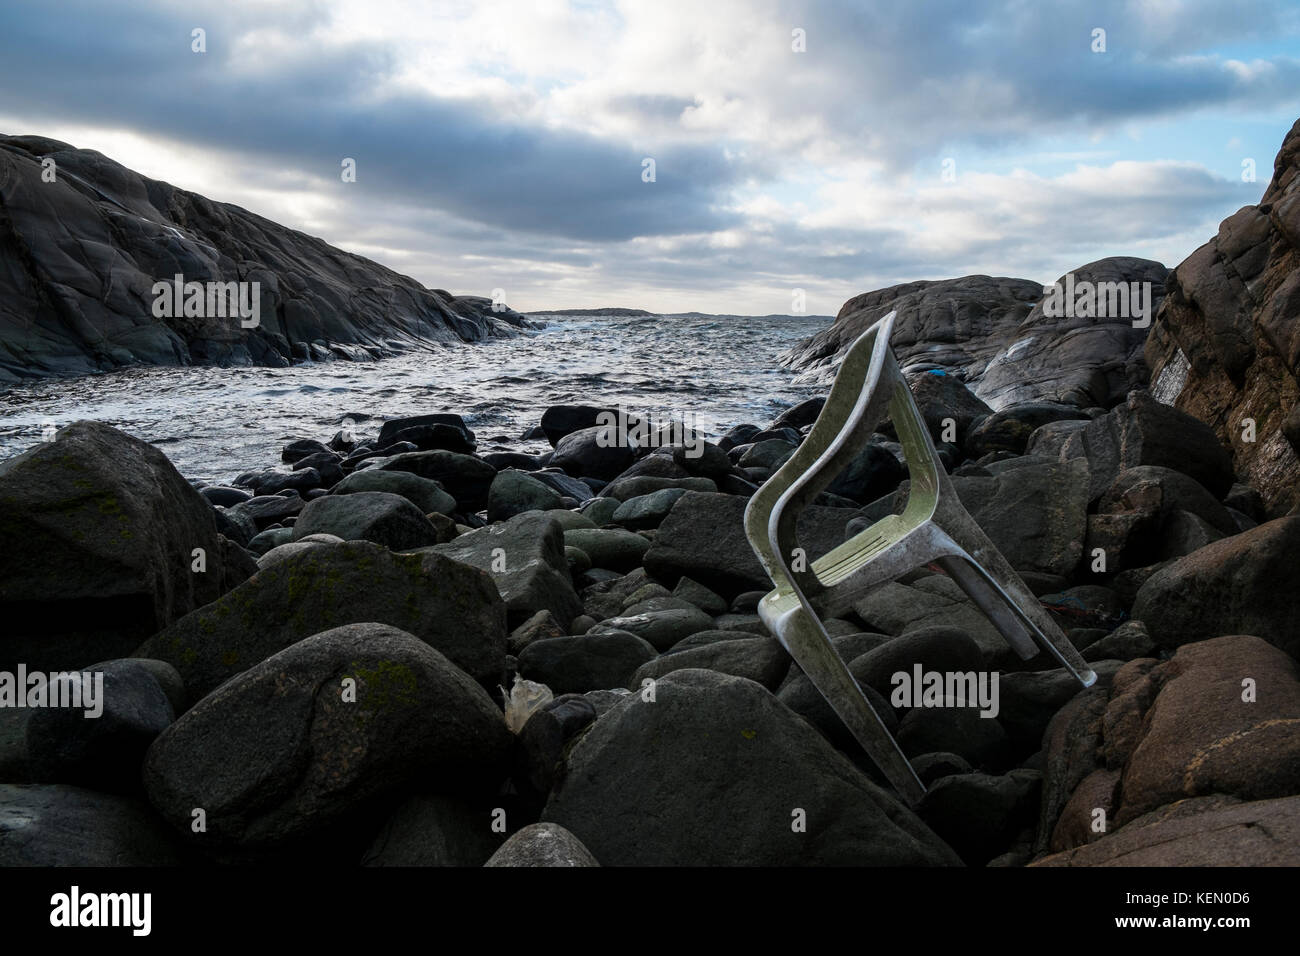 An old plastic chair lying on a rocky shore - Stock Image